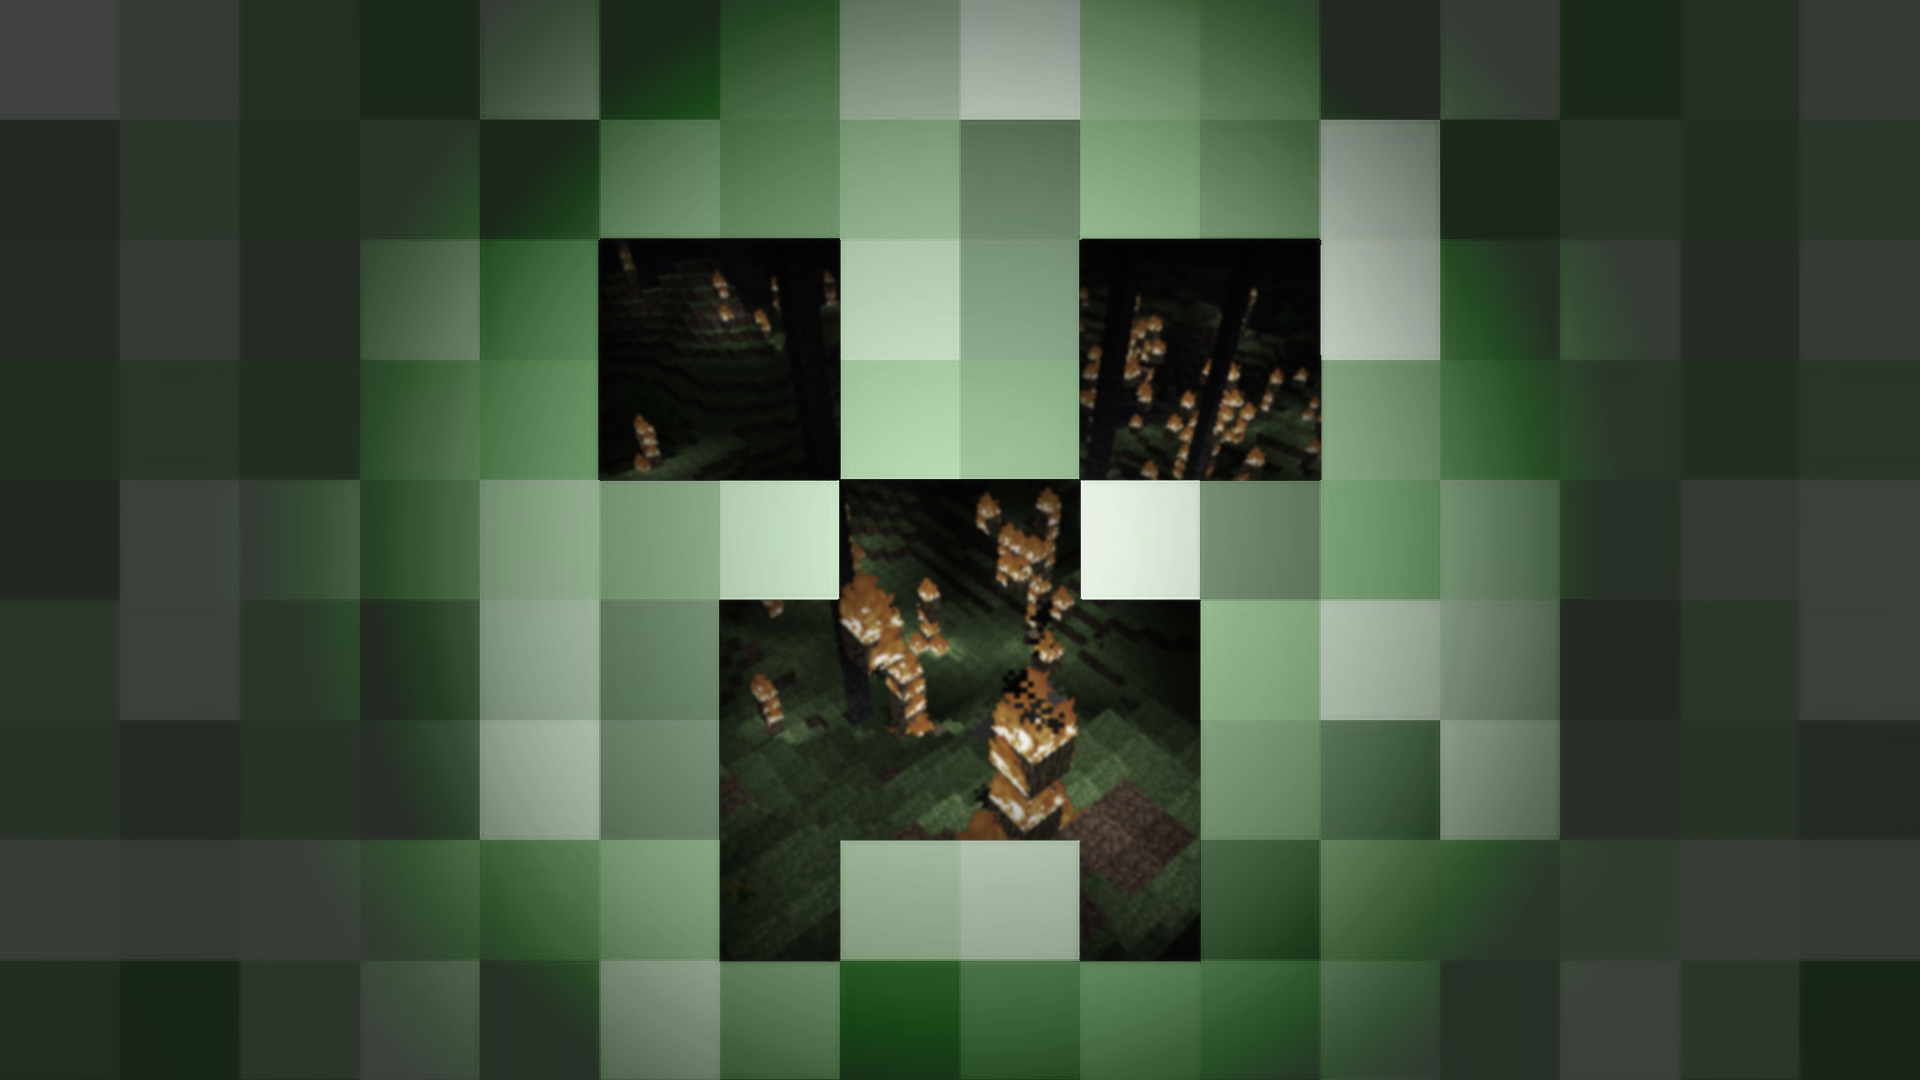 Creeper 4k Wallpapers For Your Desktop Or Mobile Screen Free And